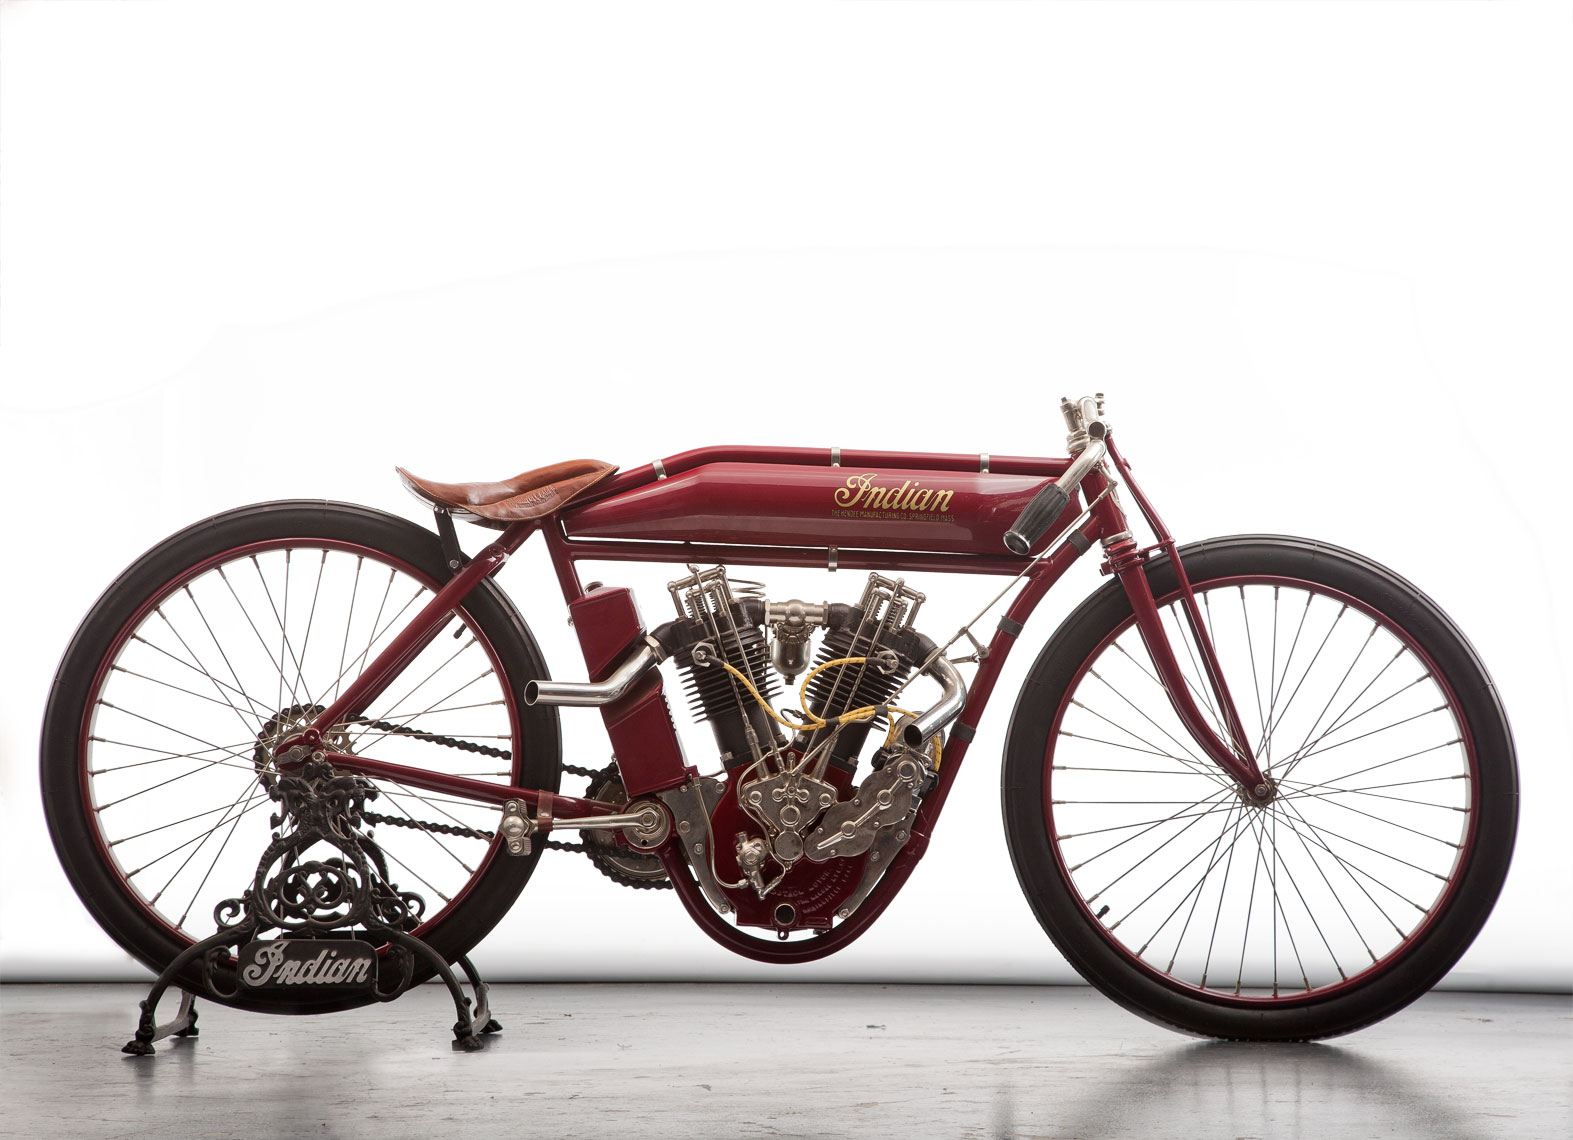 1912-indian-8-valve-racer